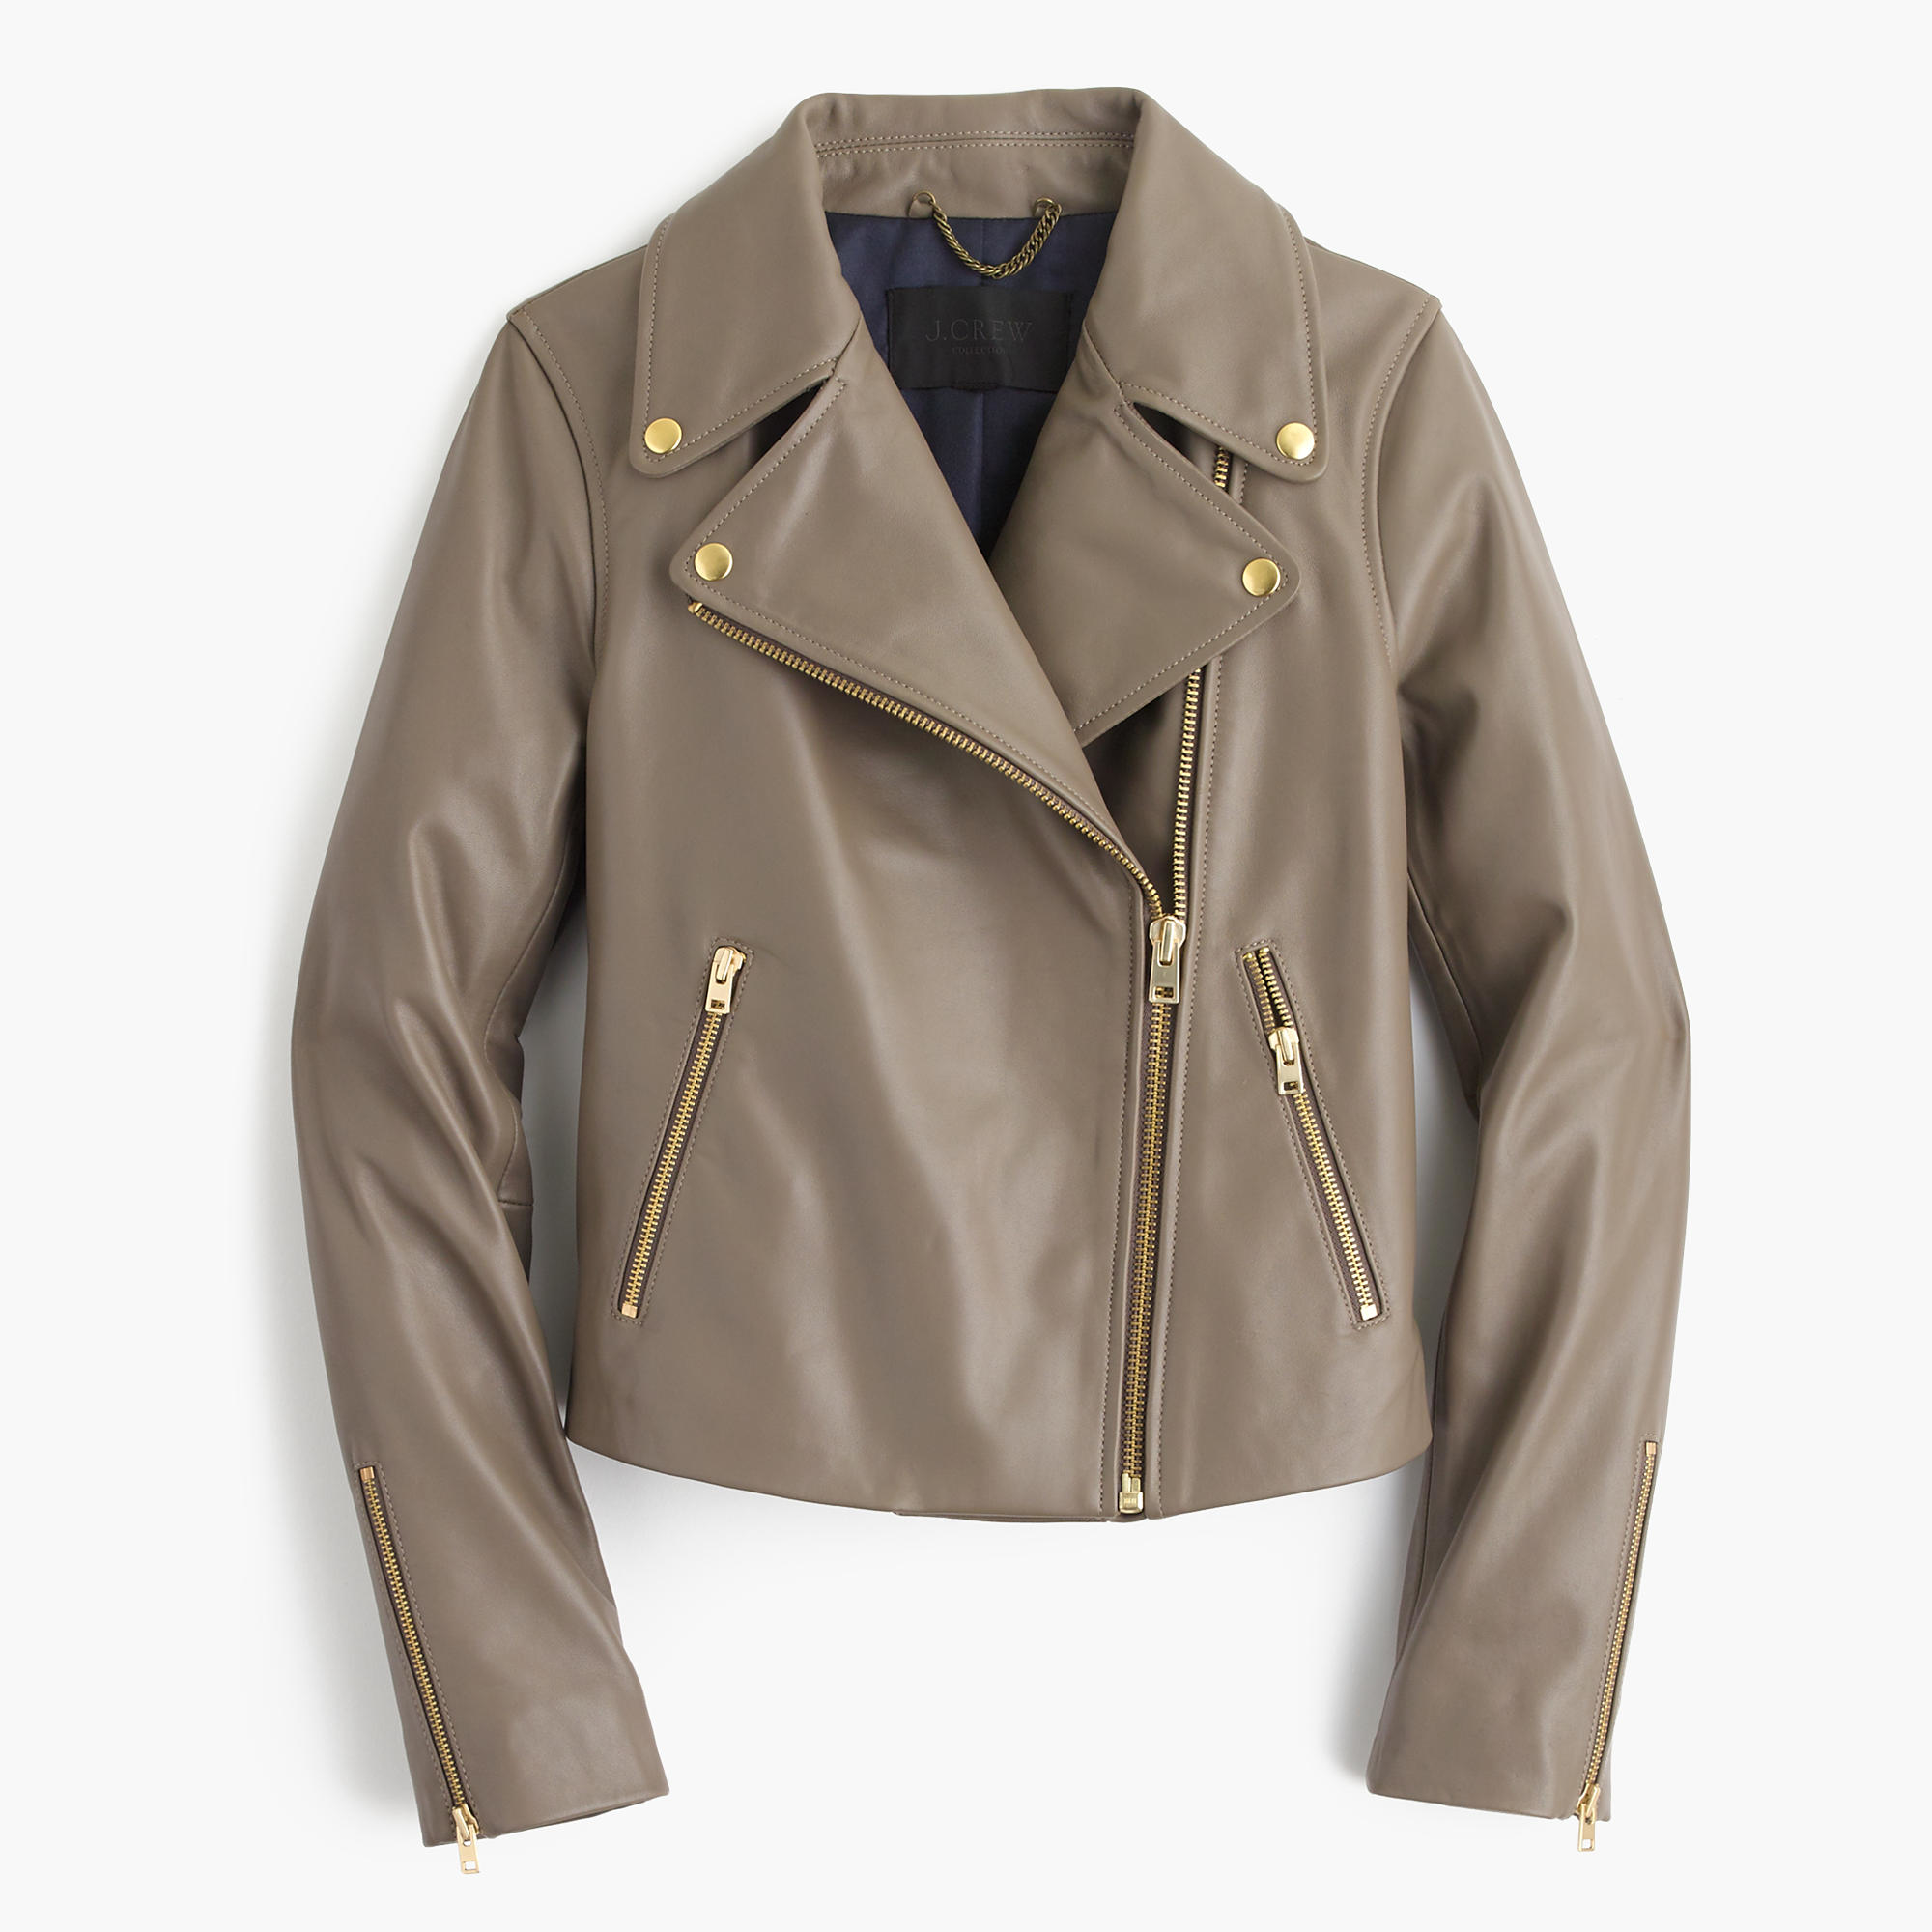 Lyst - J.Crew Collection Leather Motorcycle Jacket in Gray 3430631e604b